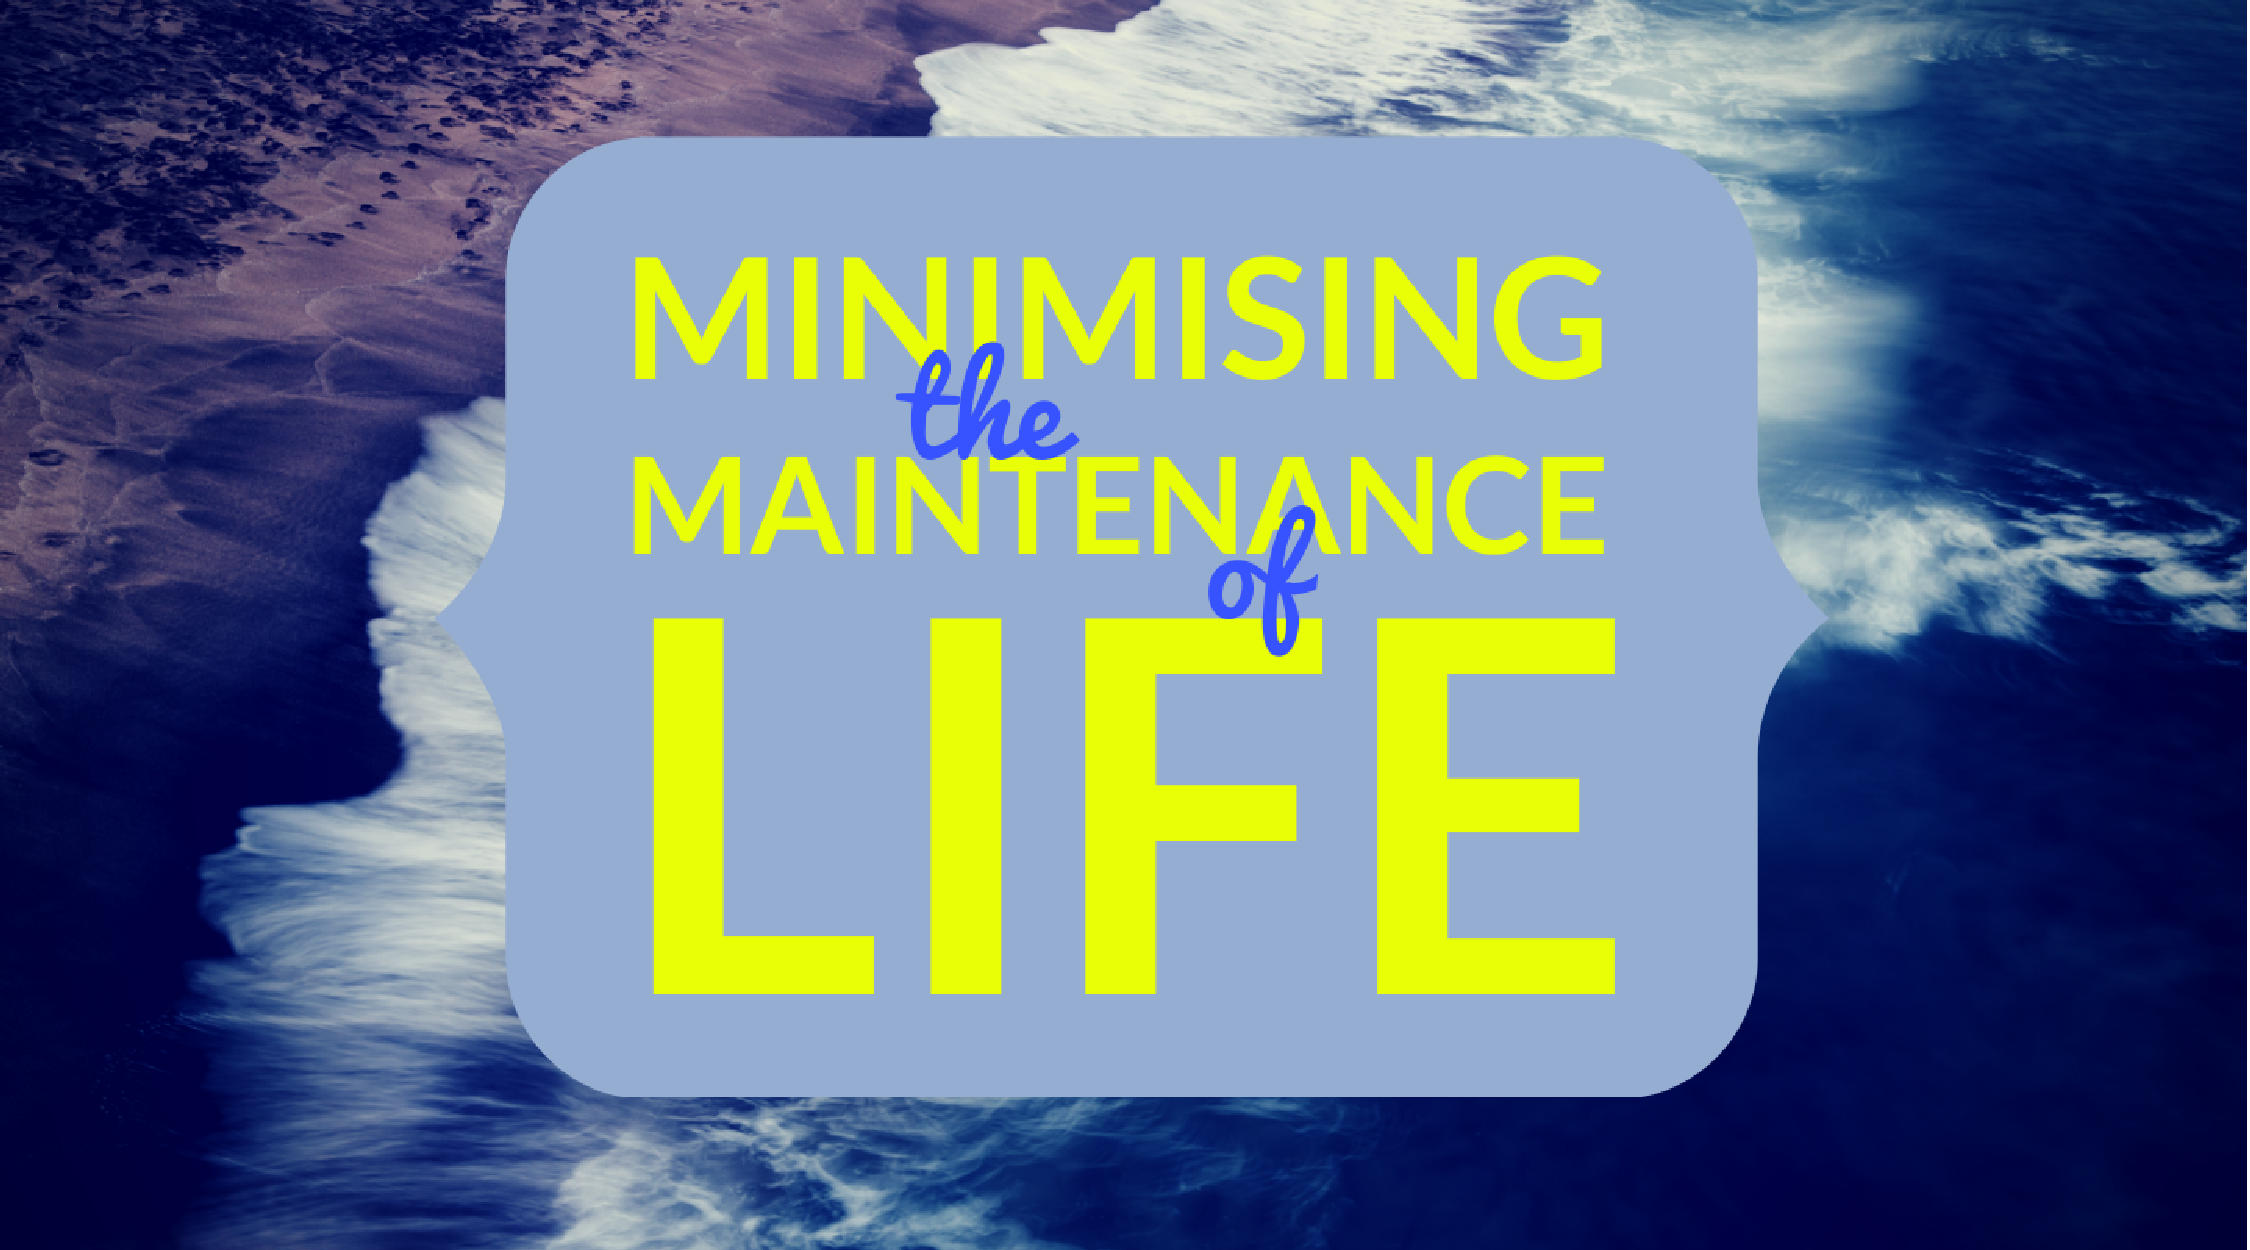 Minimising the maintenance of life